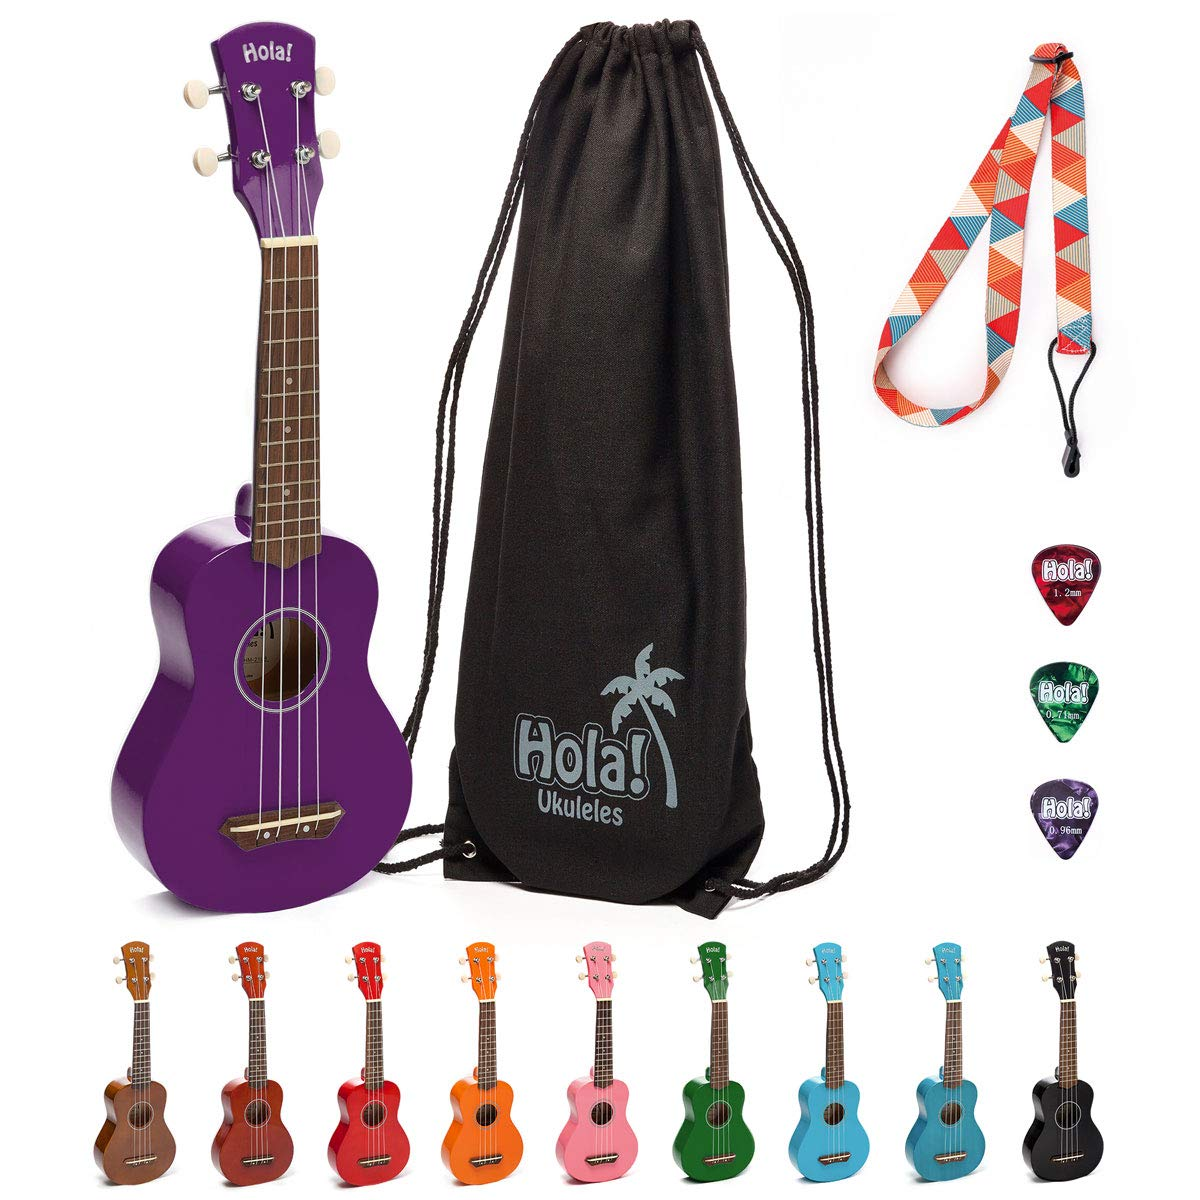 Hola! Music HM-21PP Soprano Ukulele Bundle with Canvas Tote Bag, Strap and Picks, Color Series - Purple by Hola! Music